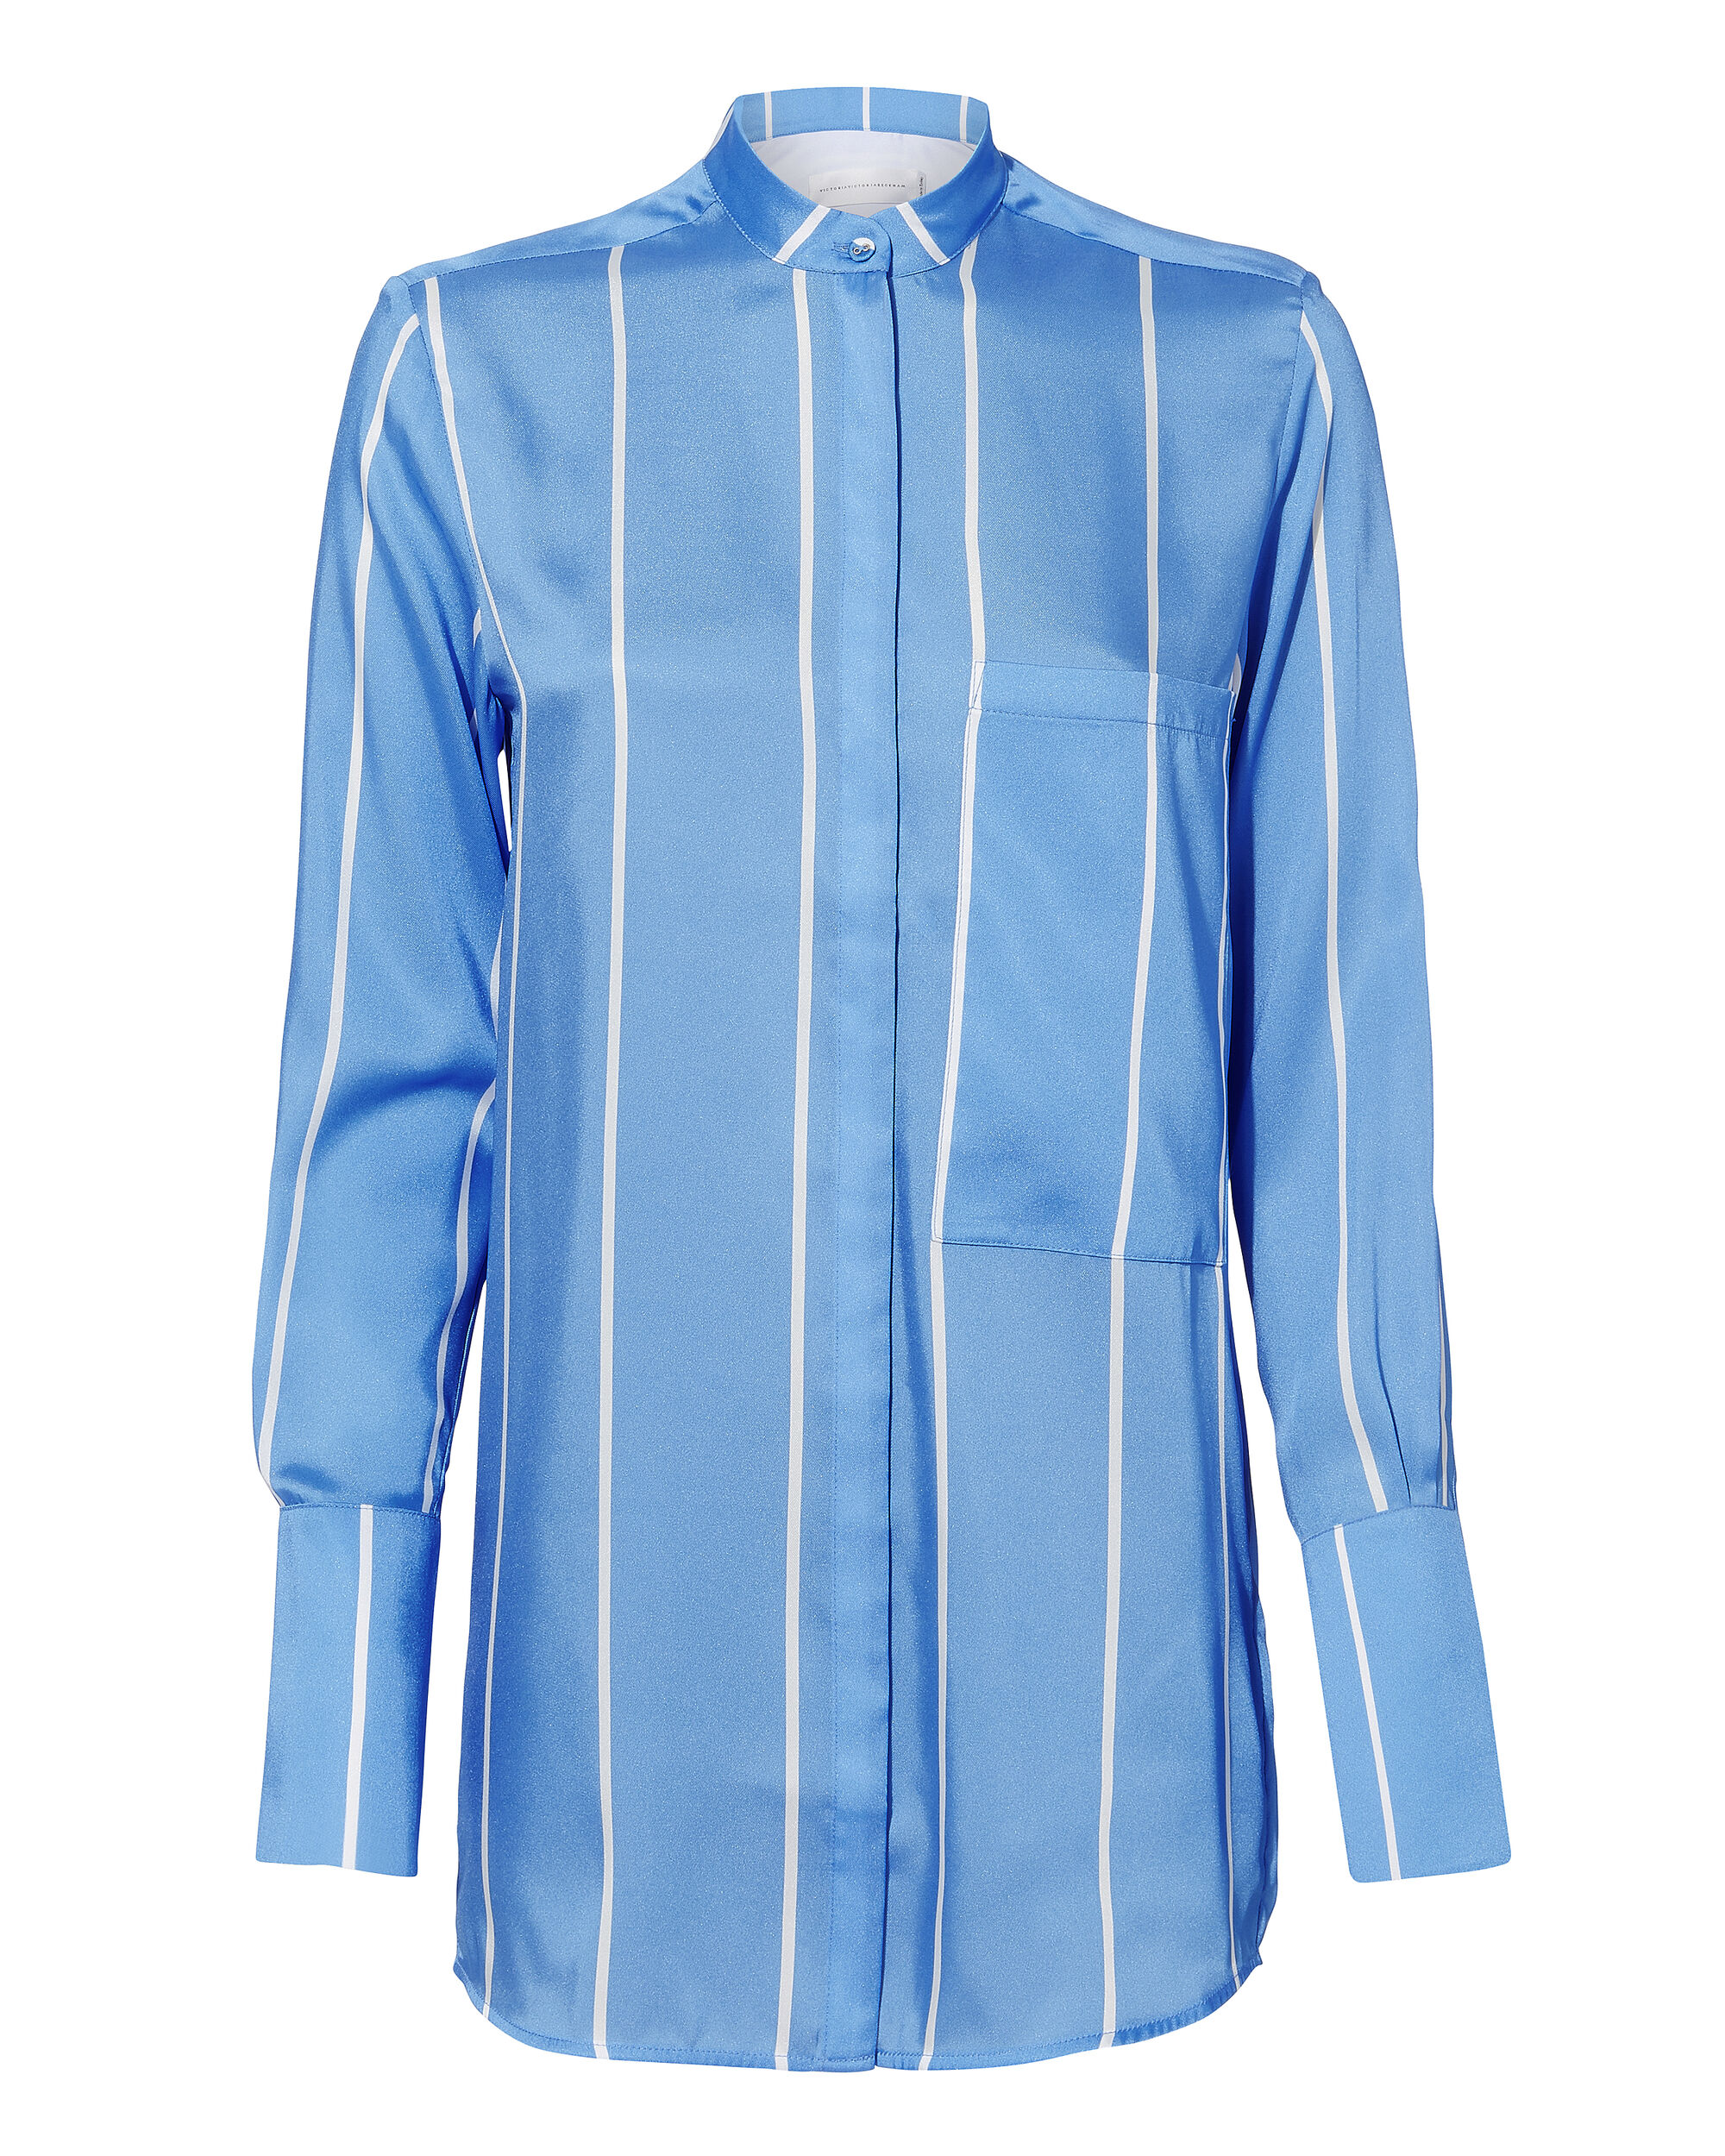 Striped Silk Top, BLUE-MED, hi-res